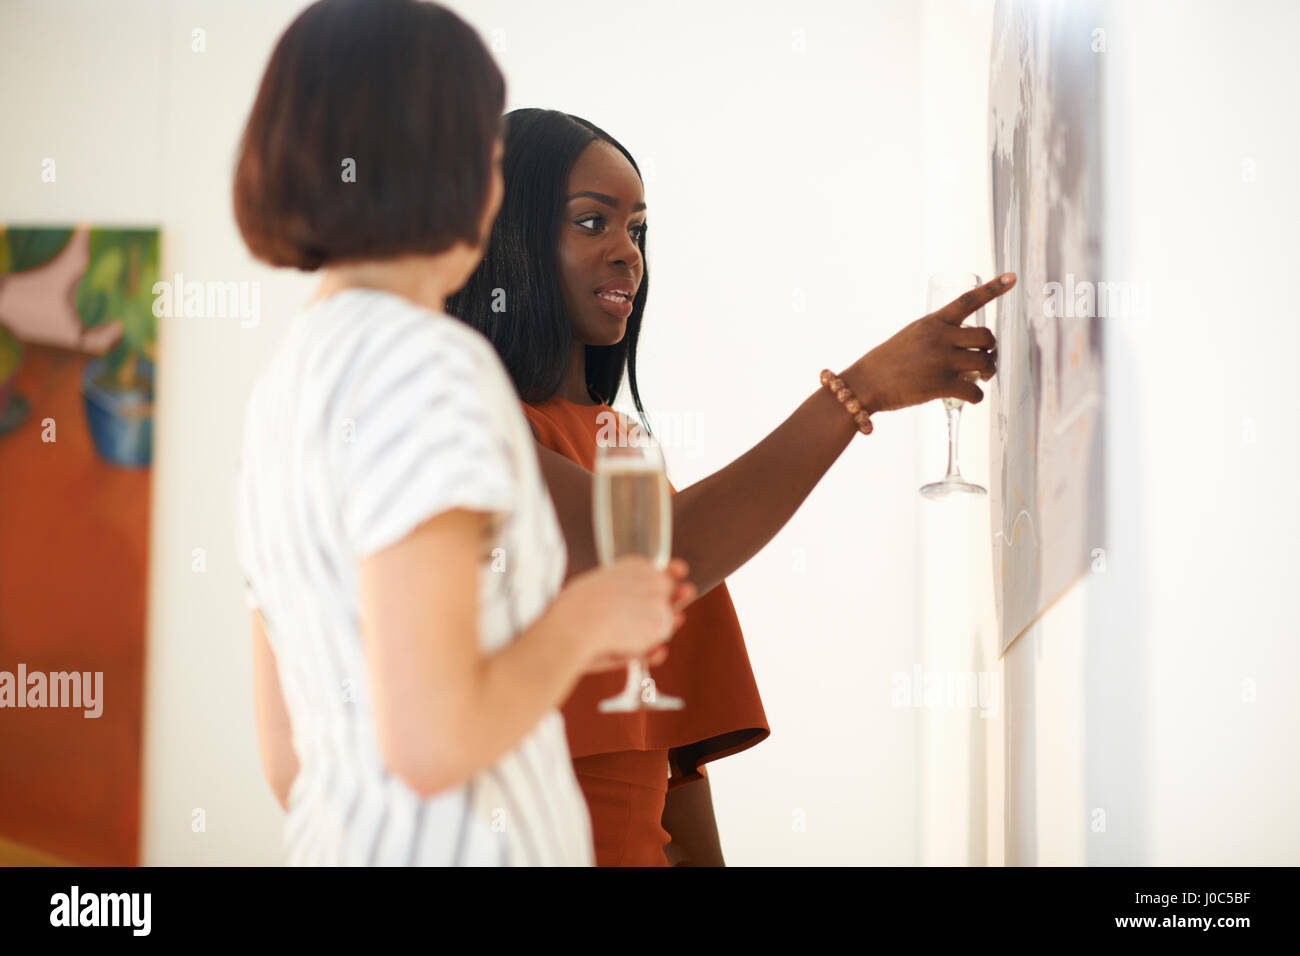 Two women pointing at oil paintings at art gallery opening - Stock Image